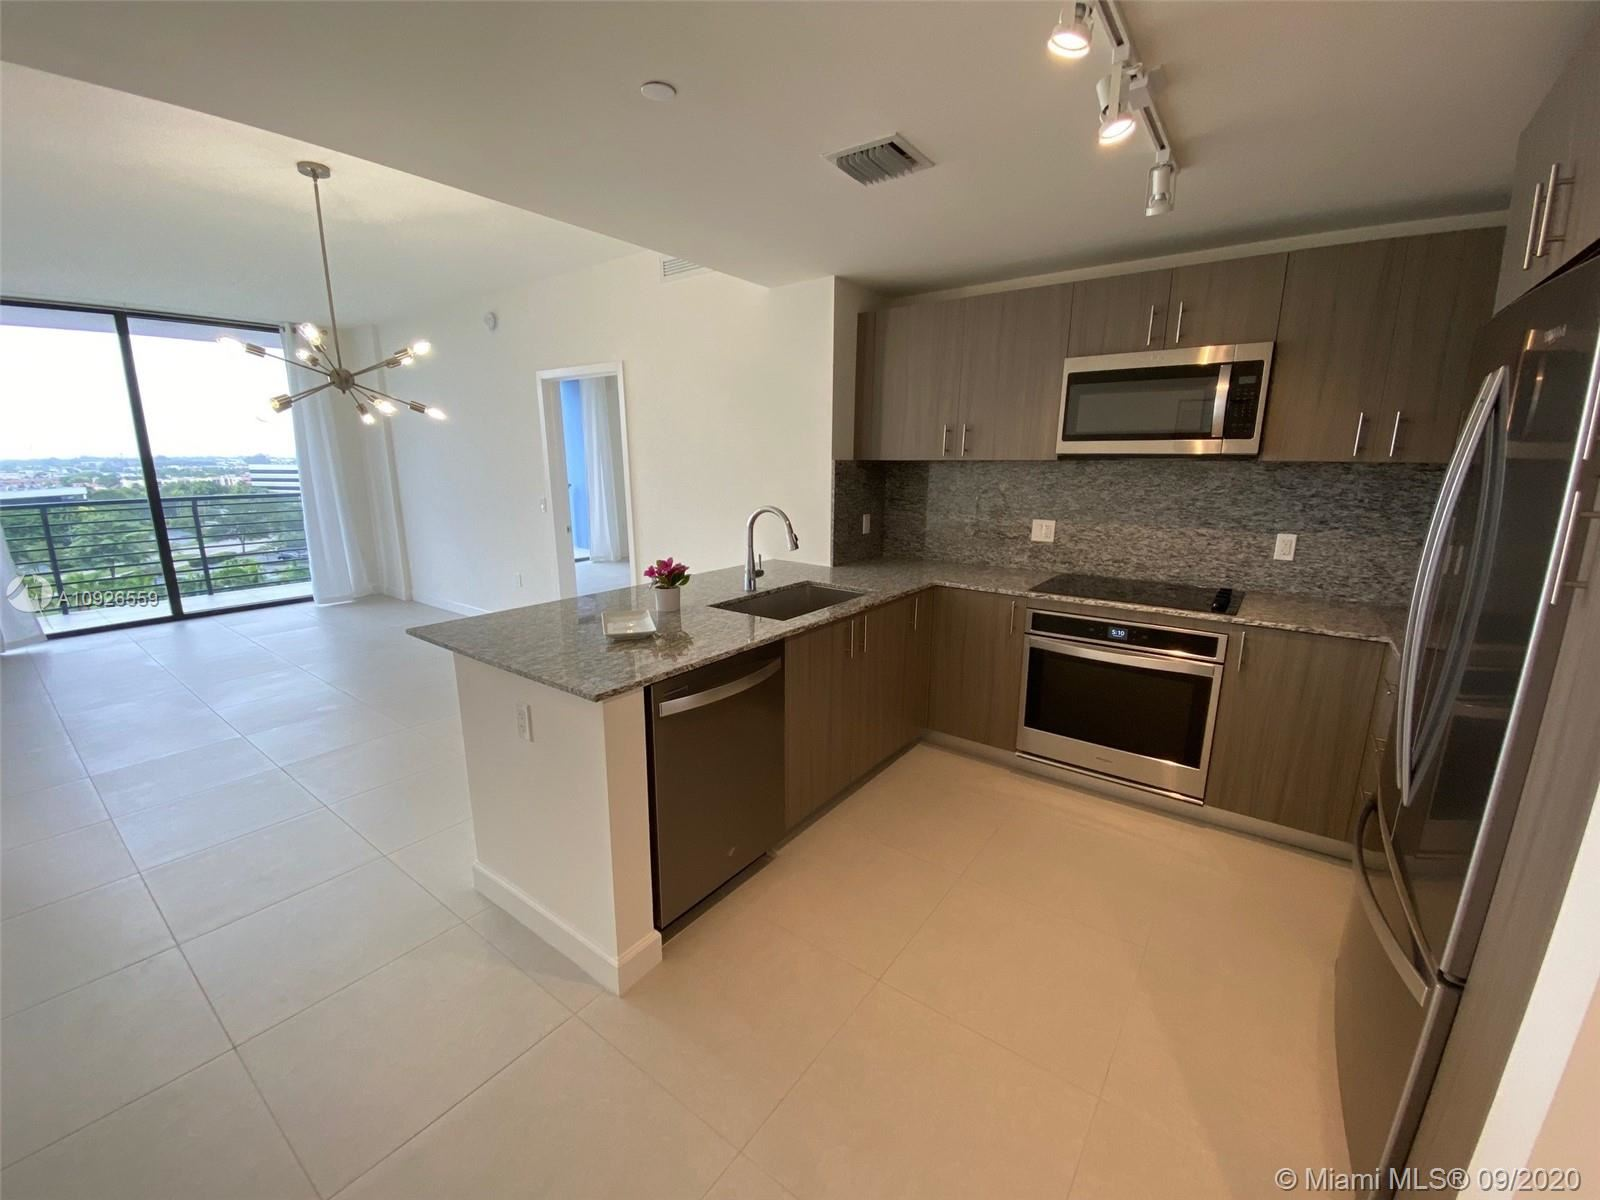 Photo of 5350 NW 84th Ave #1204, Doral, FL 33166 (MLS # A10926559)